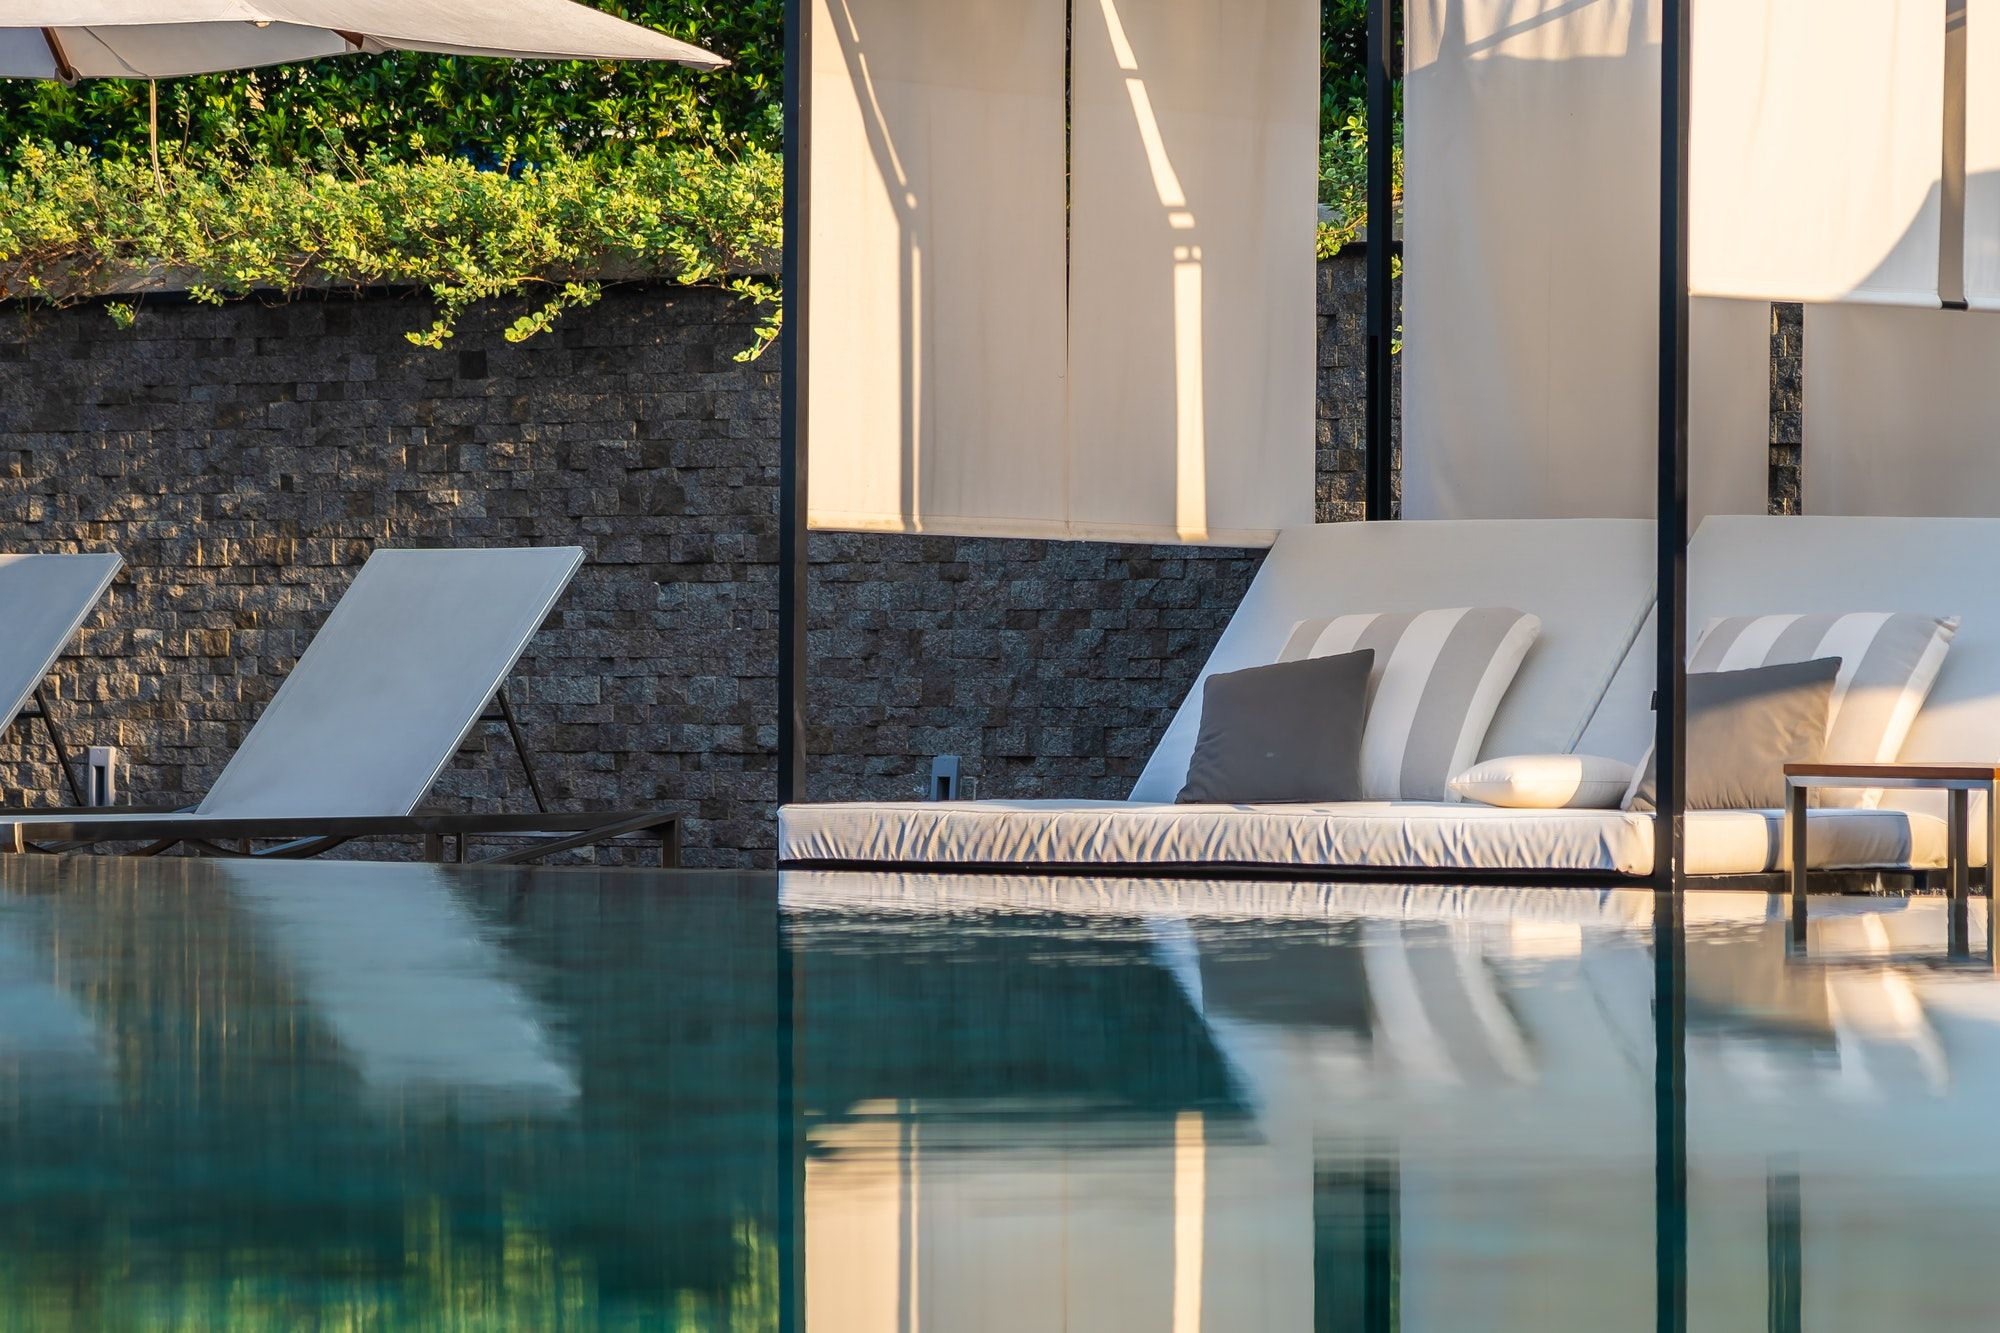 outdoor-swimming-pool-with-umbrella-chair-lounge-around-there-fo.jpg